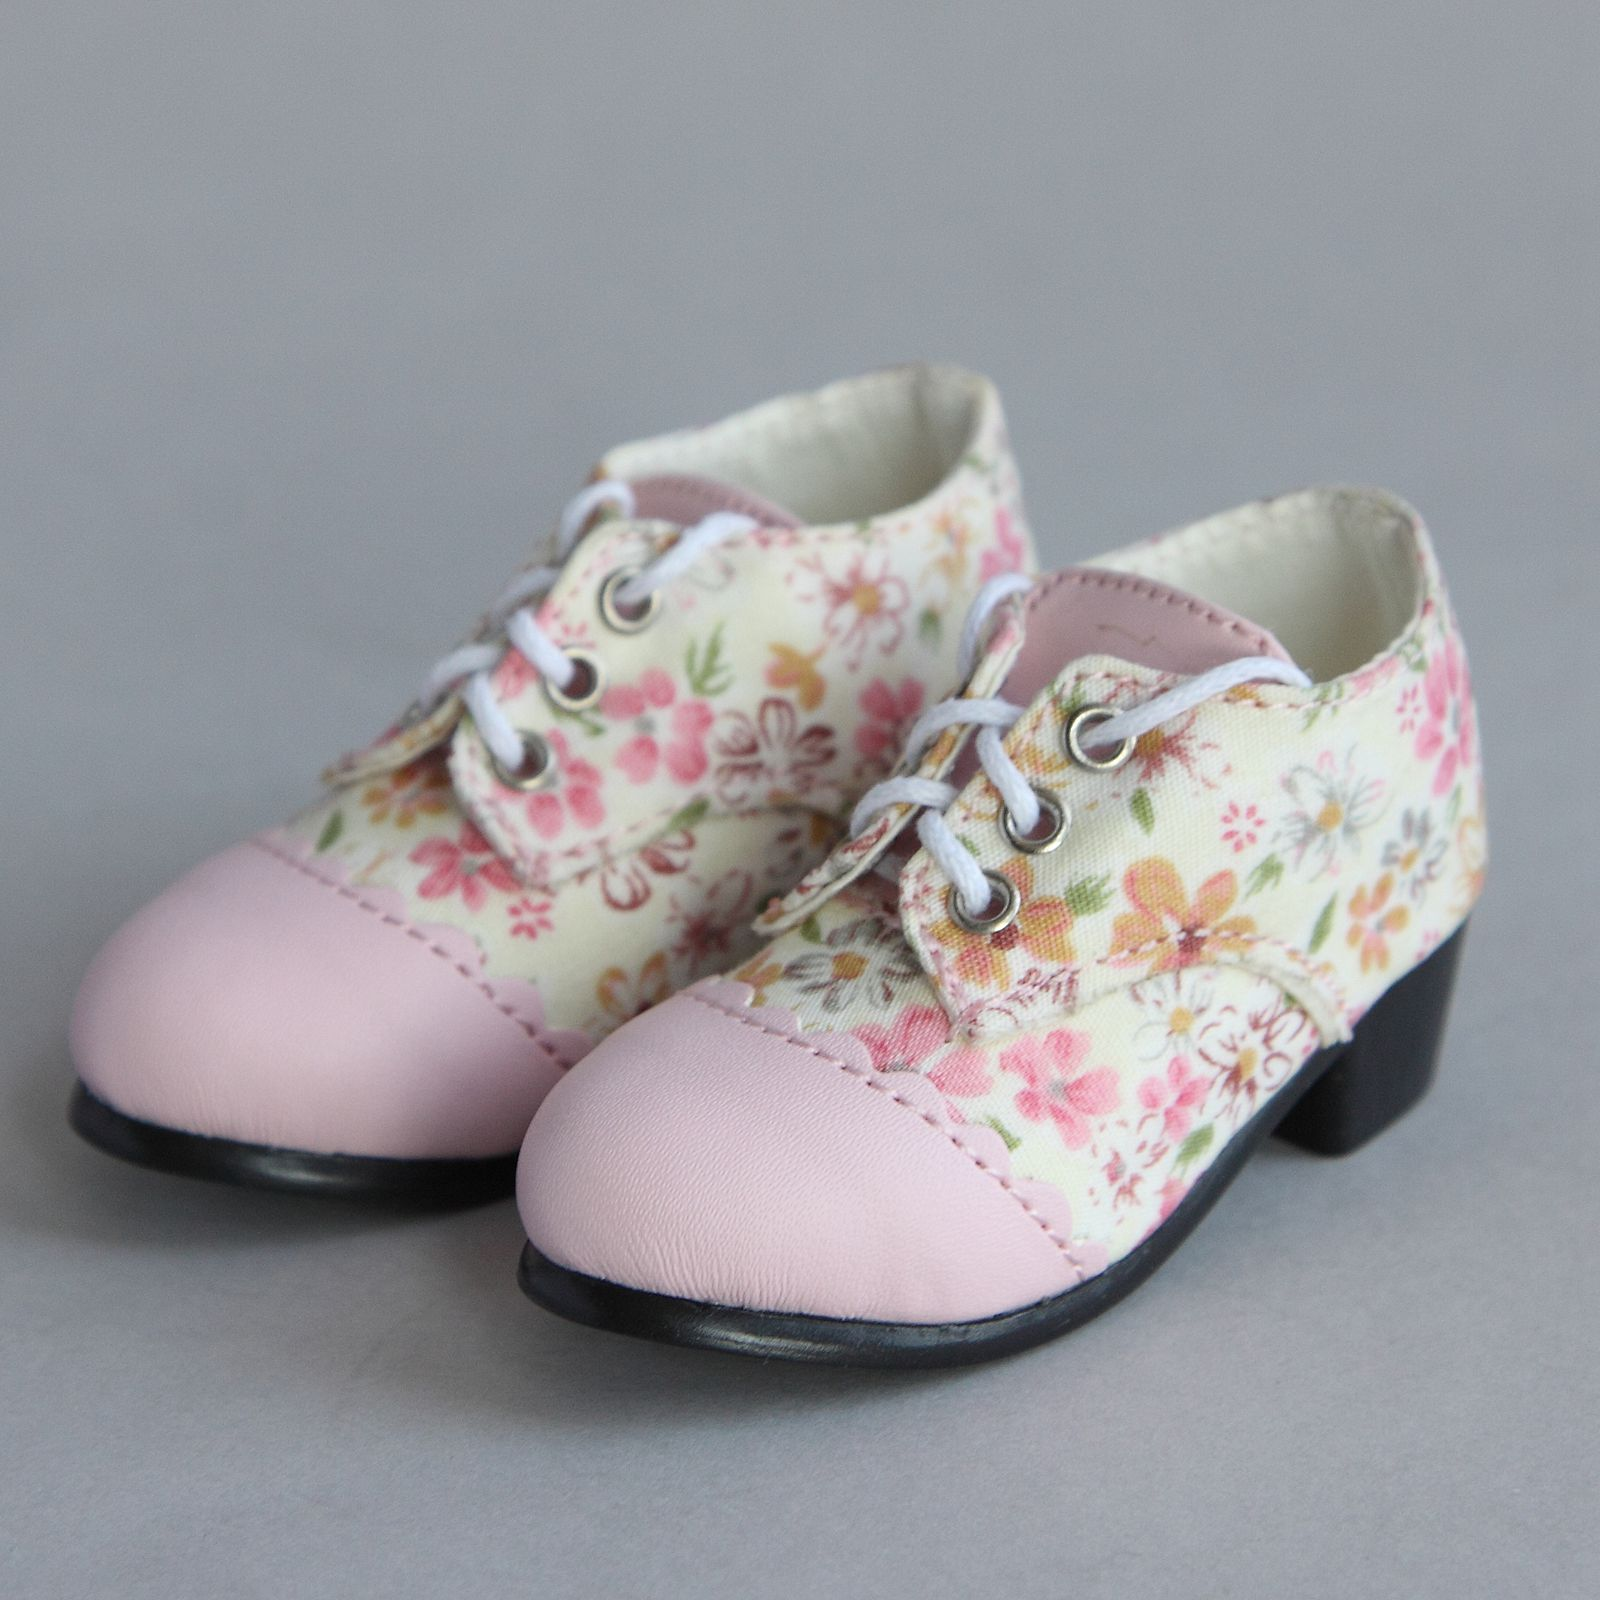 10 Pairs  Shoes Flower Design Doll Shoes  Dolls Accessories Gift PLF